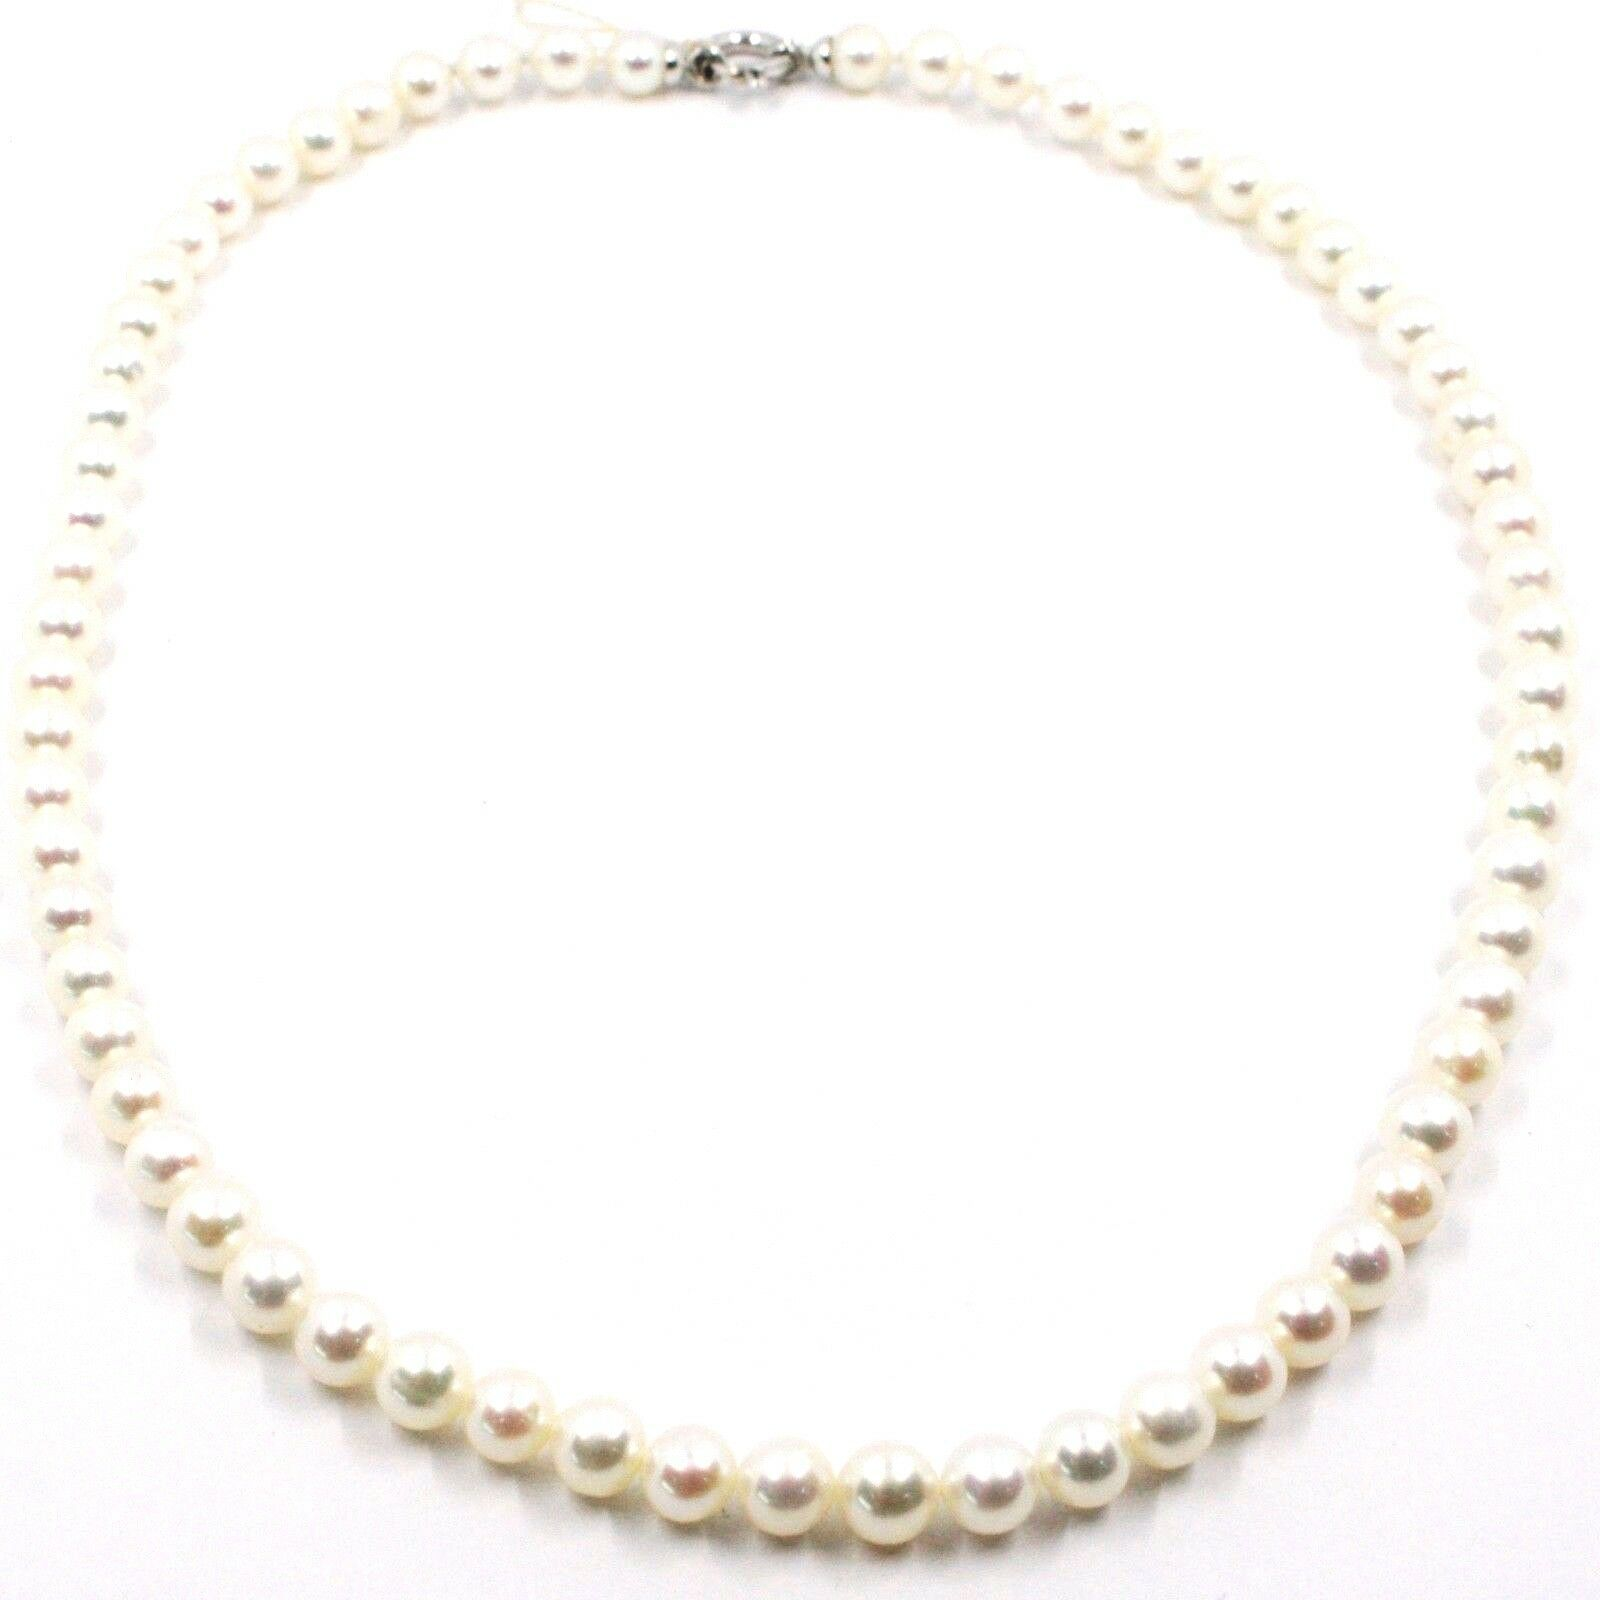 Necklace, Closing White Gold 18K, White Pearls 6-6.5 mm, 42 49 55 CM